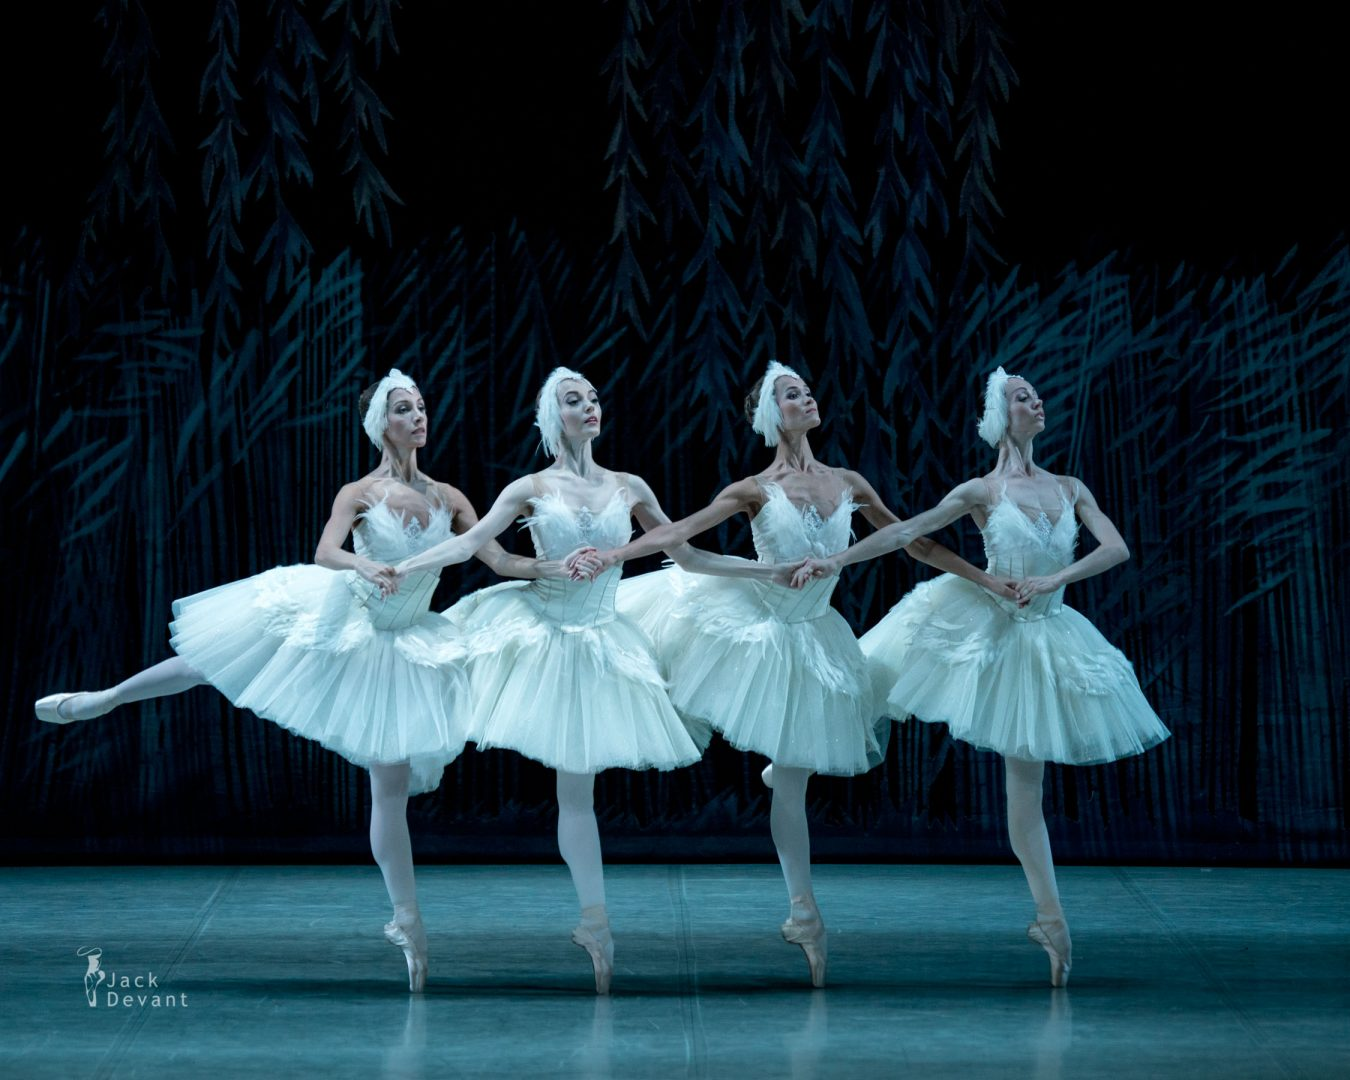 Ksenia Barbasheva, Ksenya Korobets, Yana Lobas and Anna Terenteva as Cygnets in Swan Lake